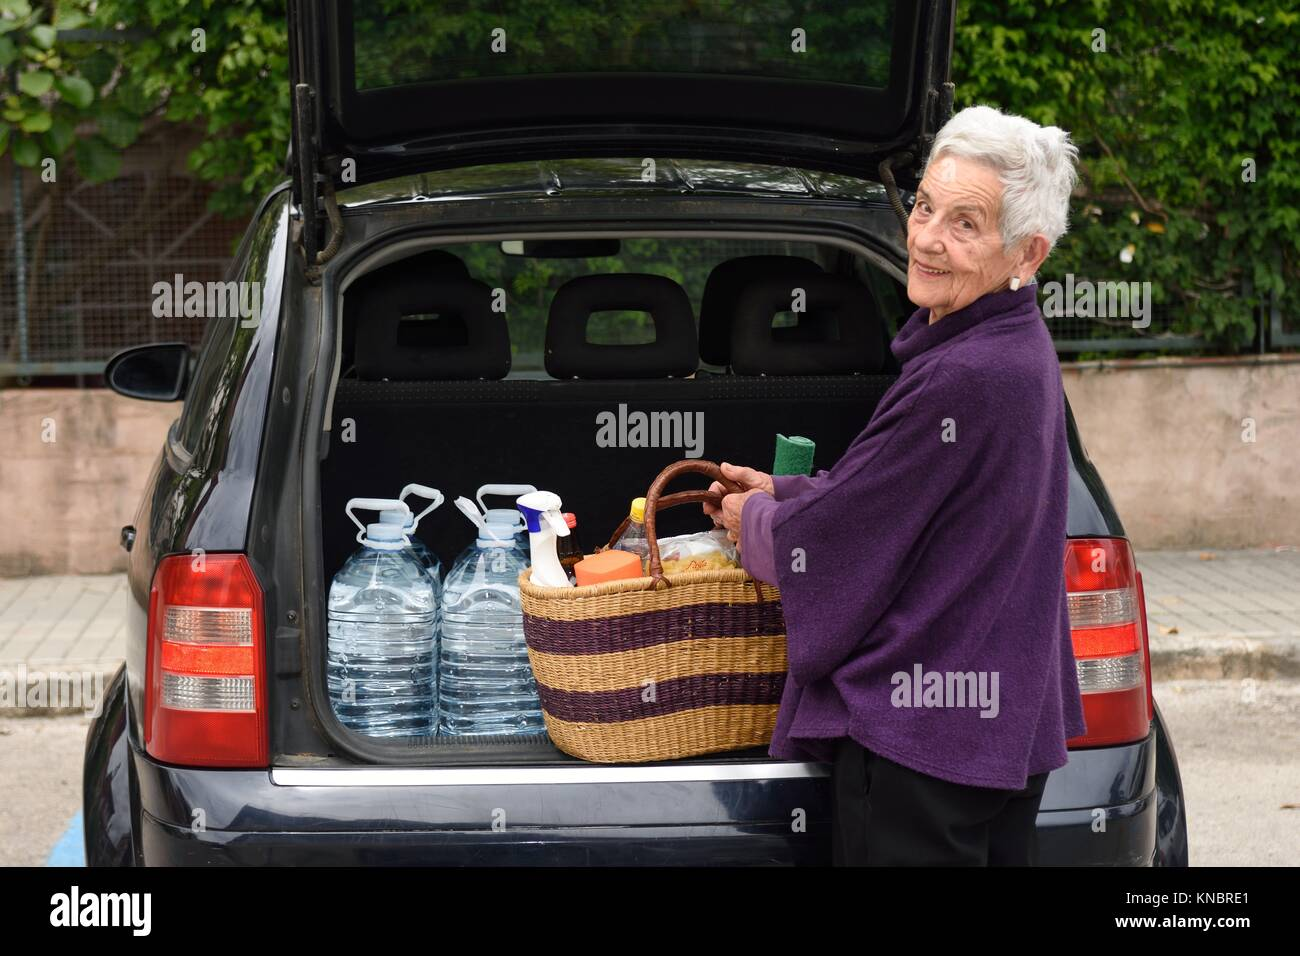 Old woman downloading the car purchase Stock Photo: 168060985 - Alamy